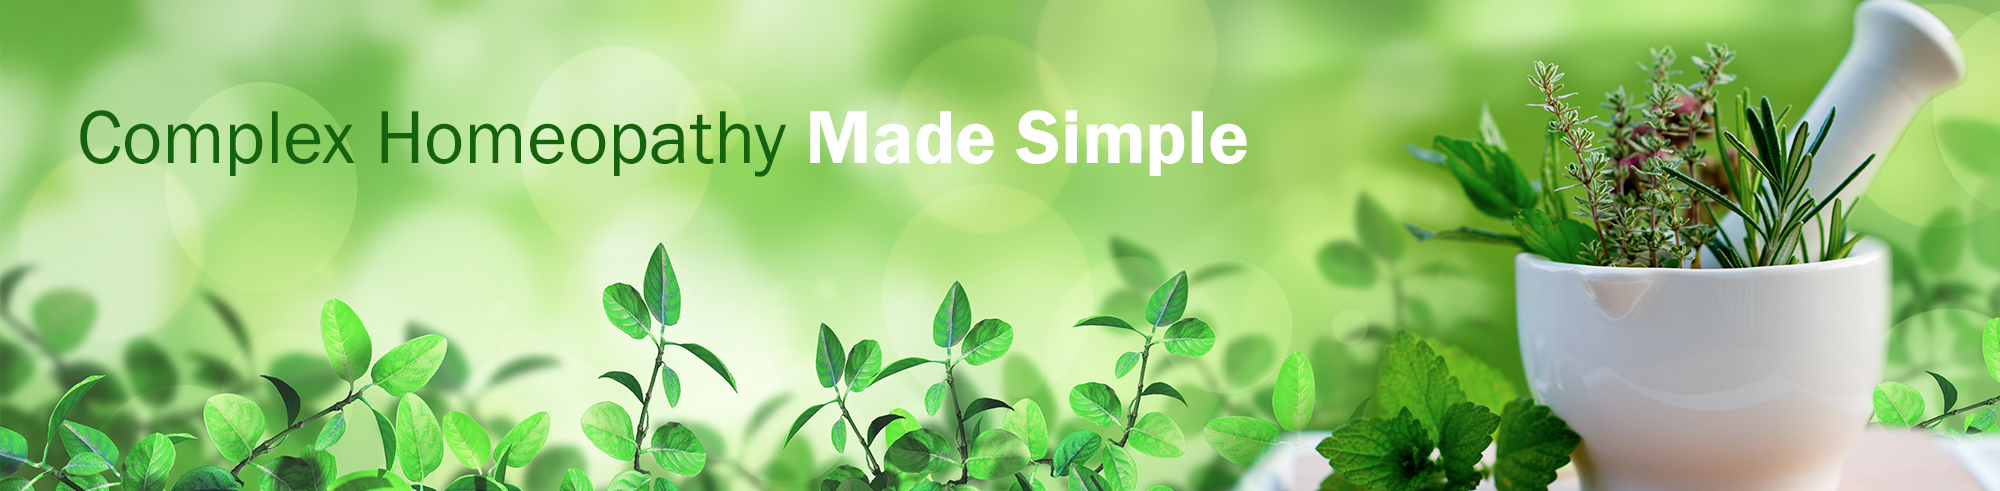 Homeopathy Made Simple